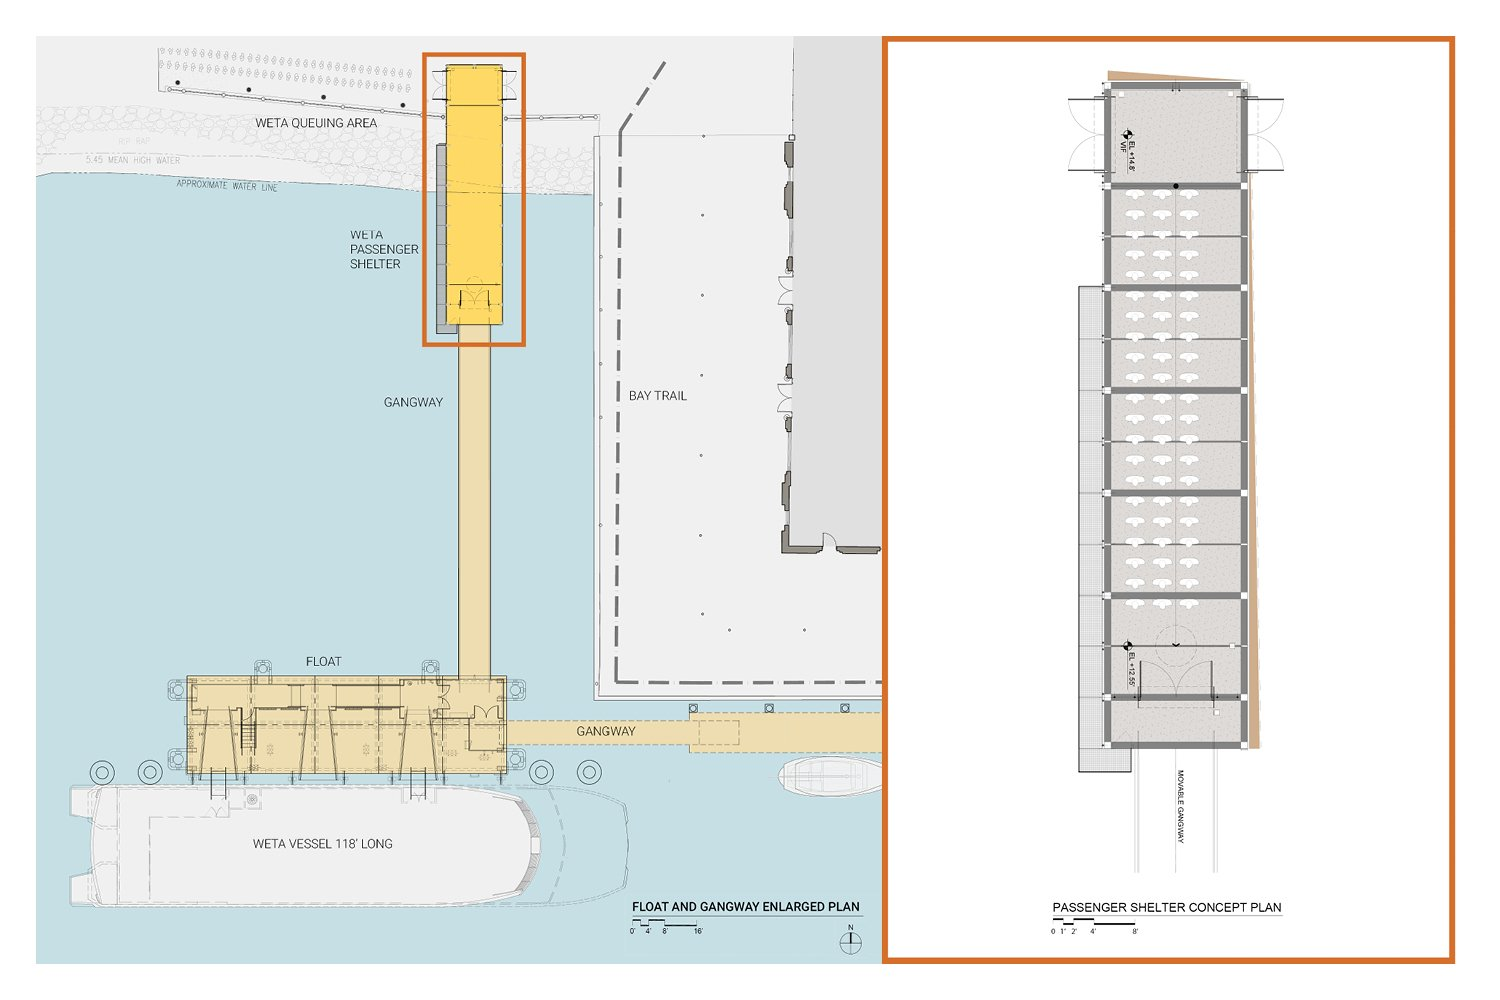 Enlarged site plan and passenger shelter floorplan. Marcy Wong Donn Logan Architects}